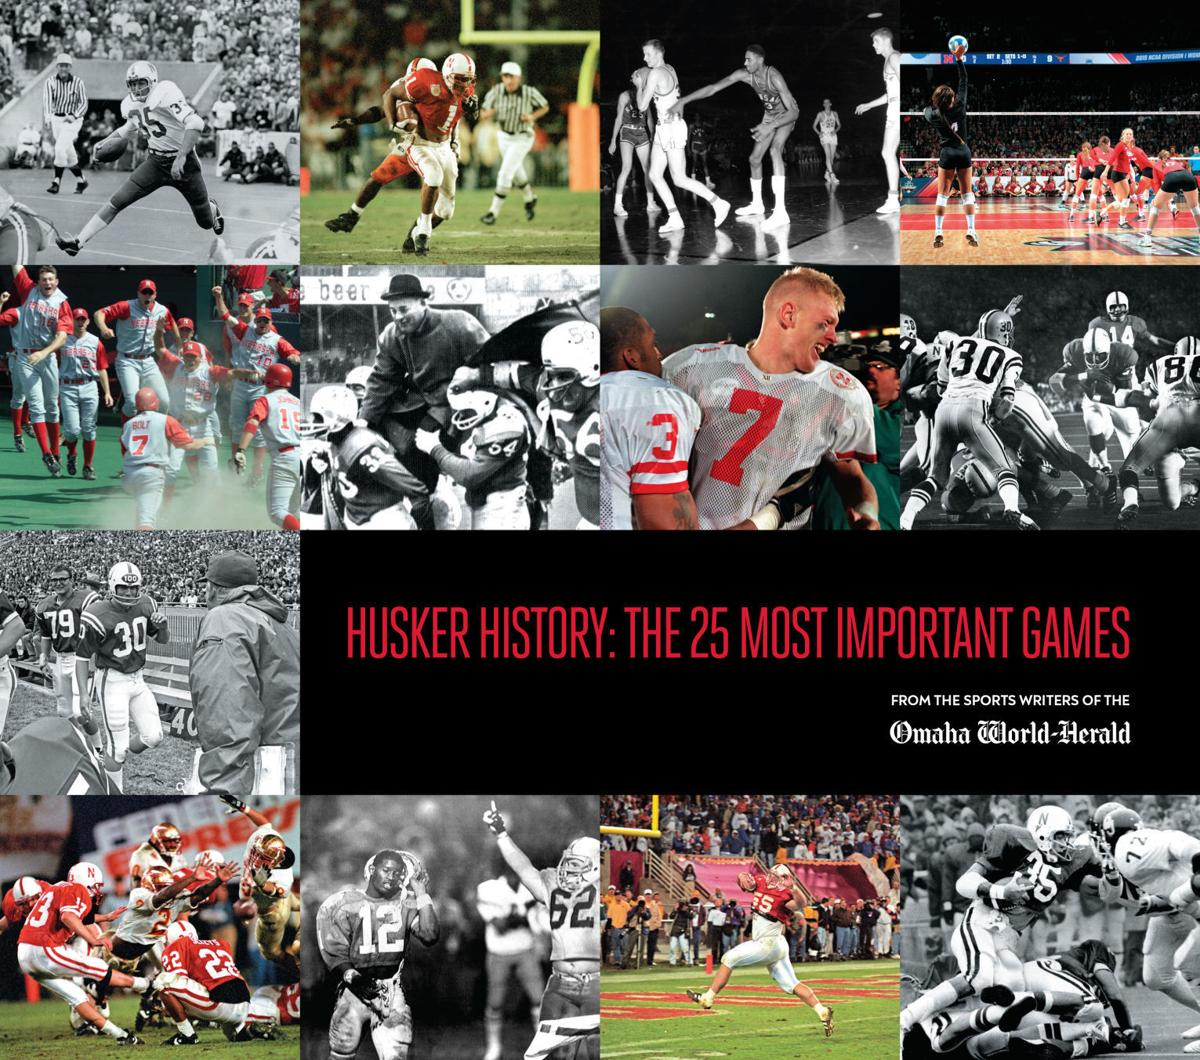 Husker History: The 25 Most Important Games